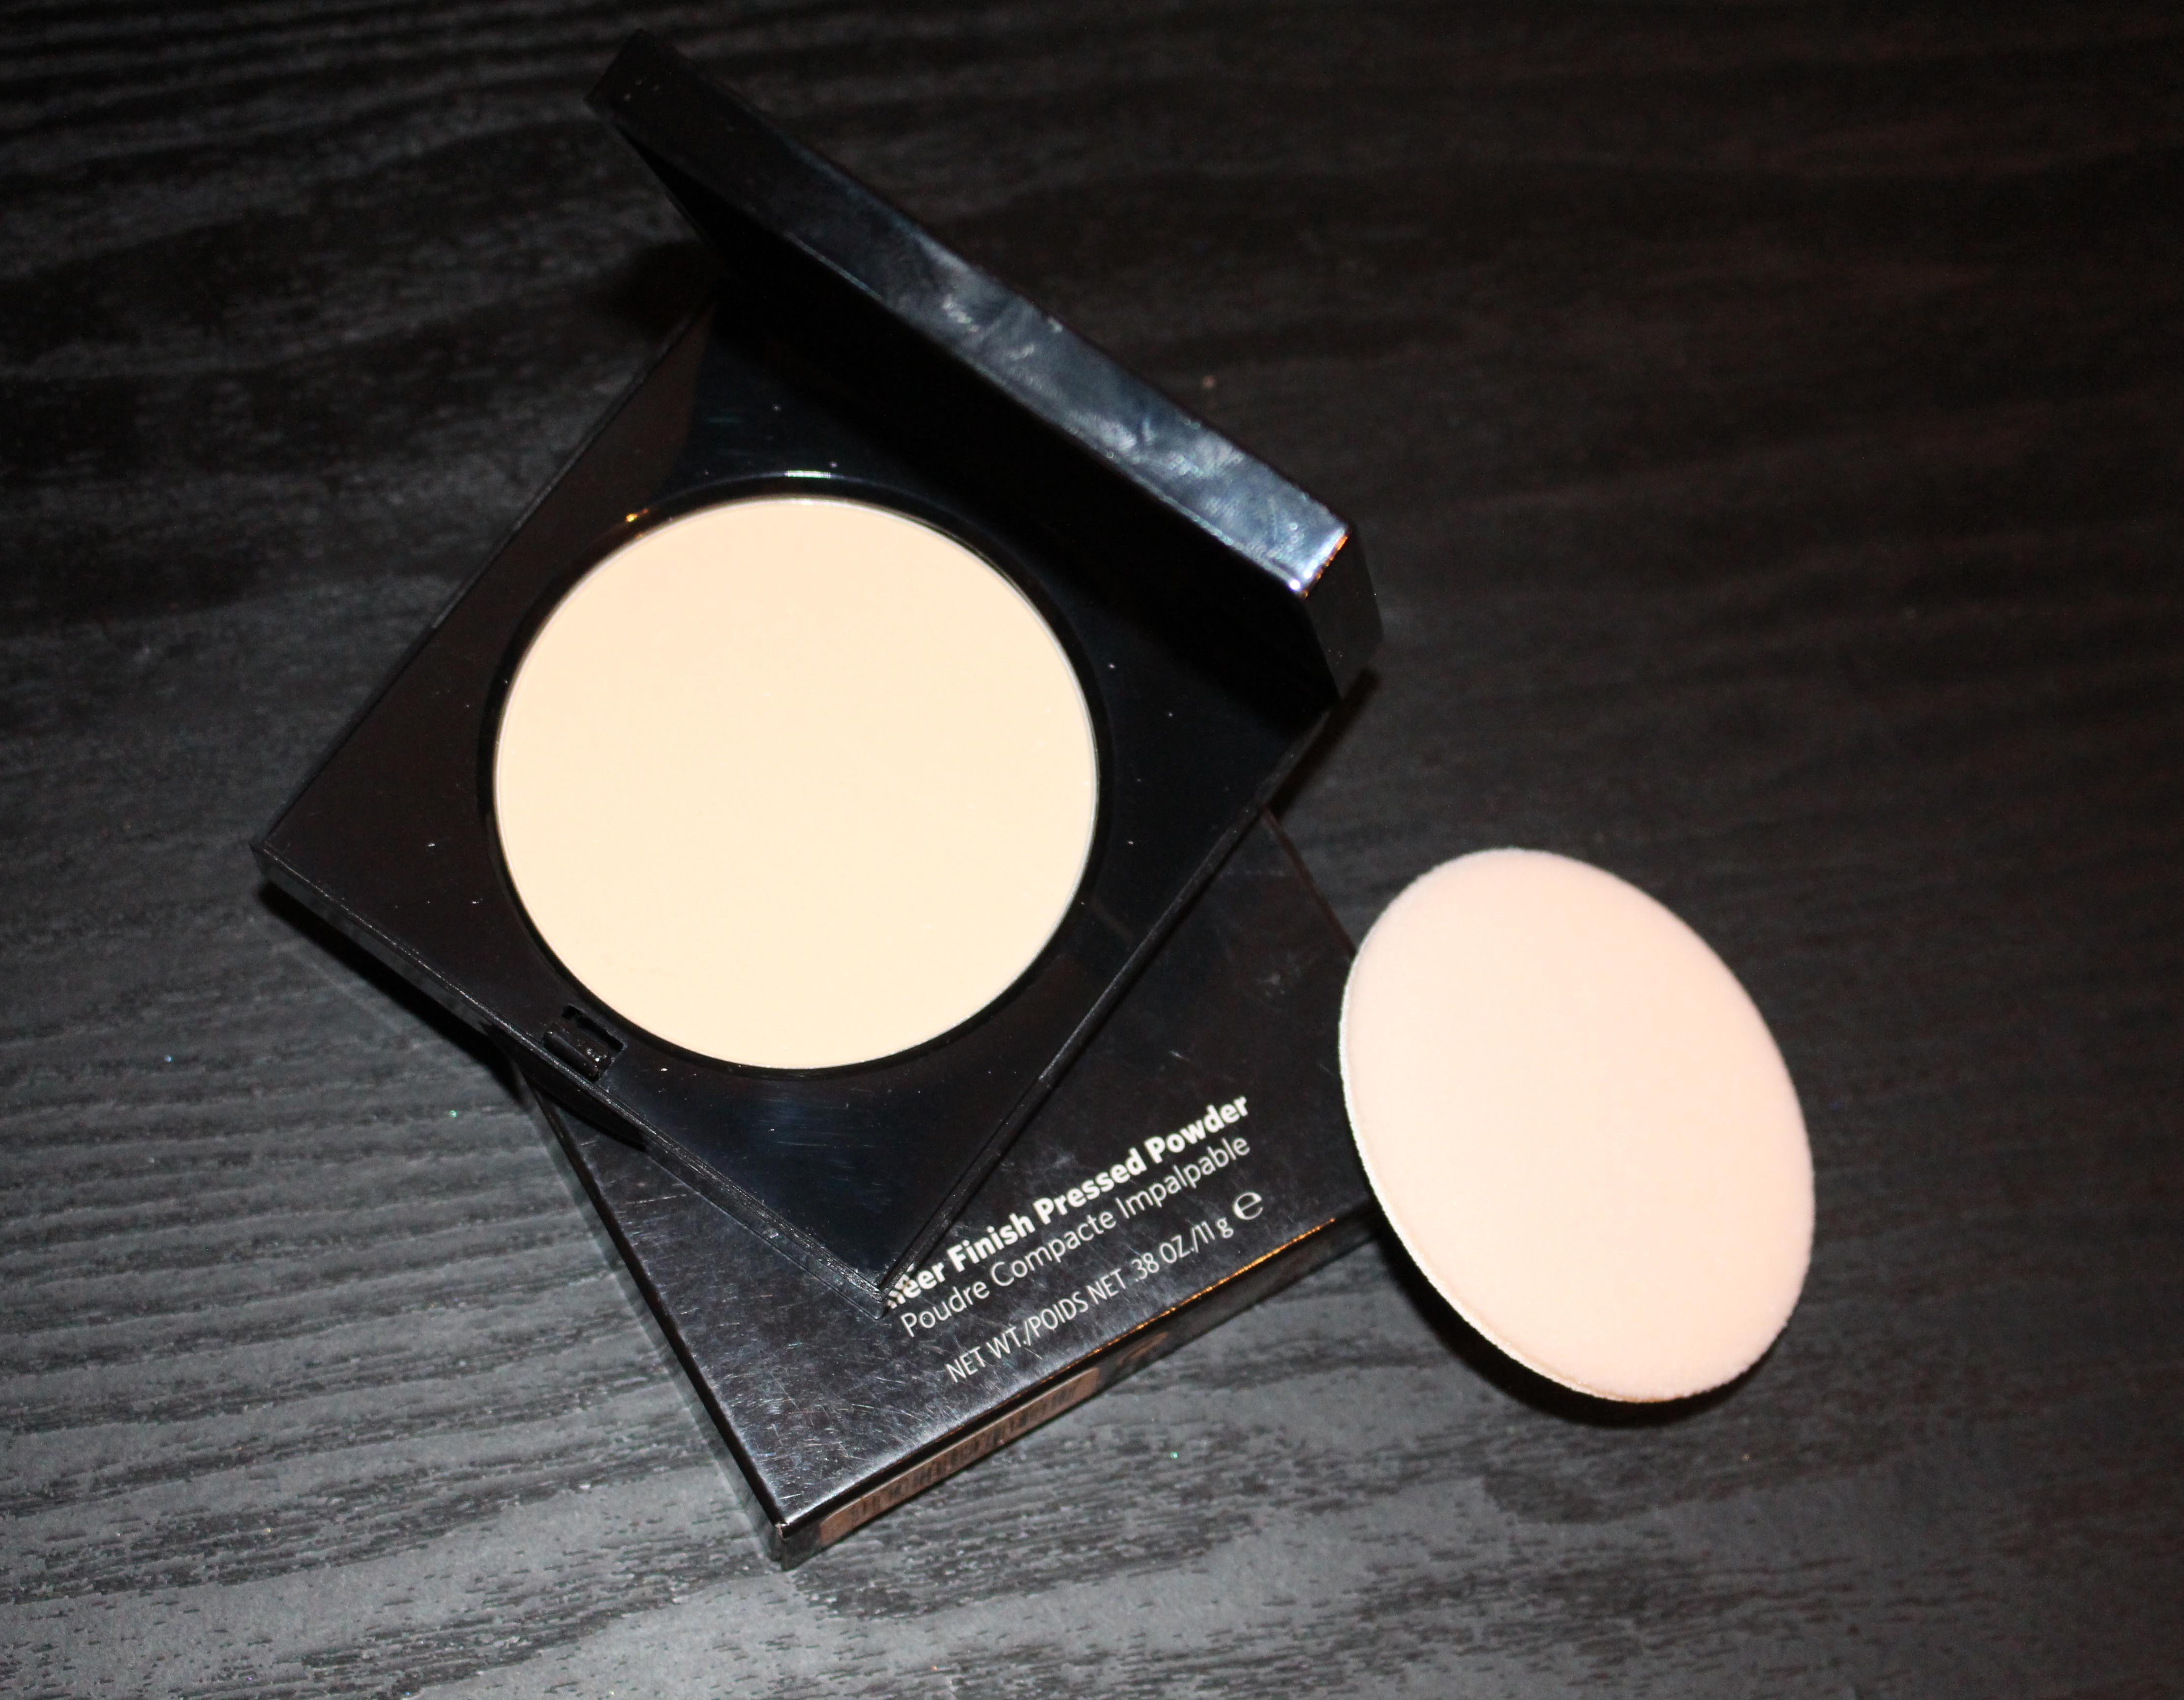 Bobbi Brown sheer finish pressed powder come in a solid, sturdy sleek black compact with sharp corners . .  beware!